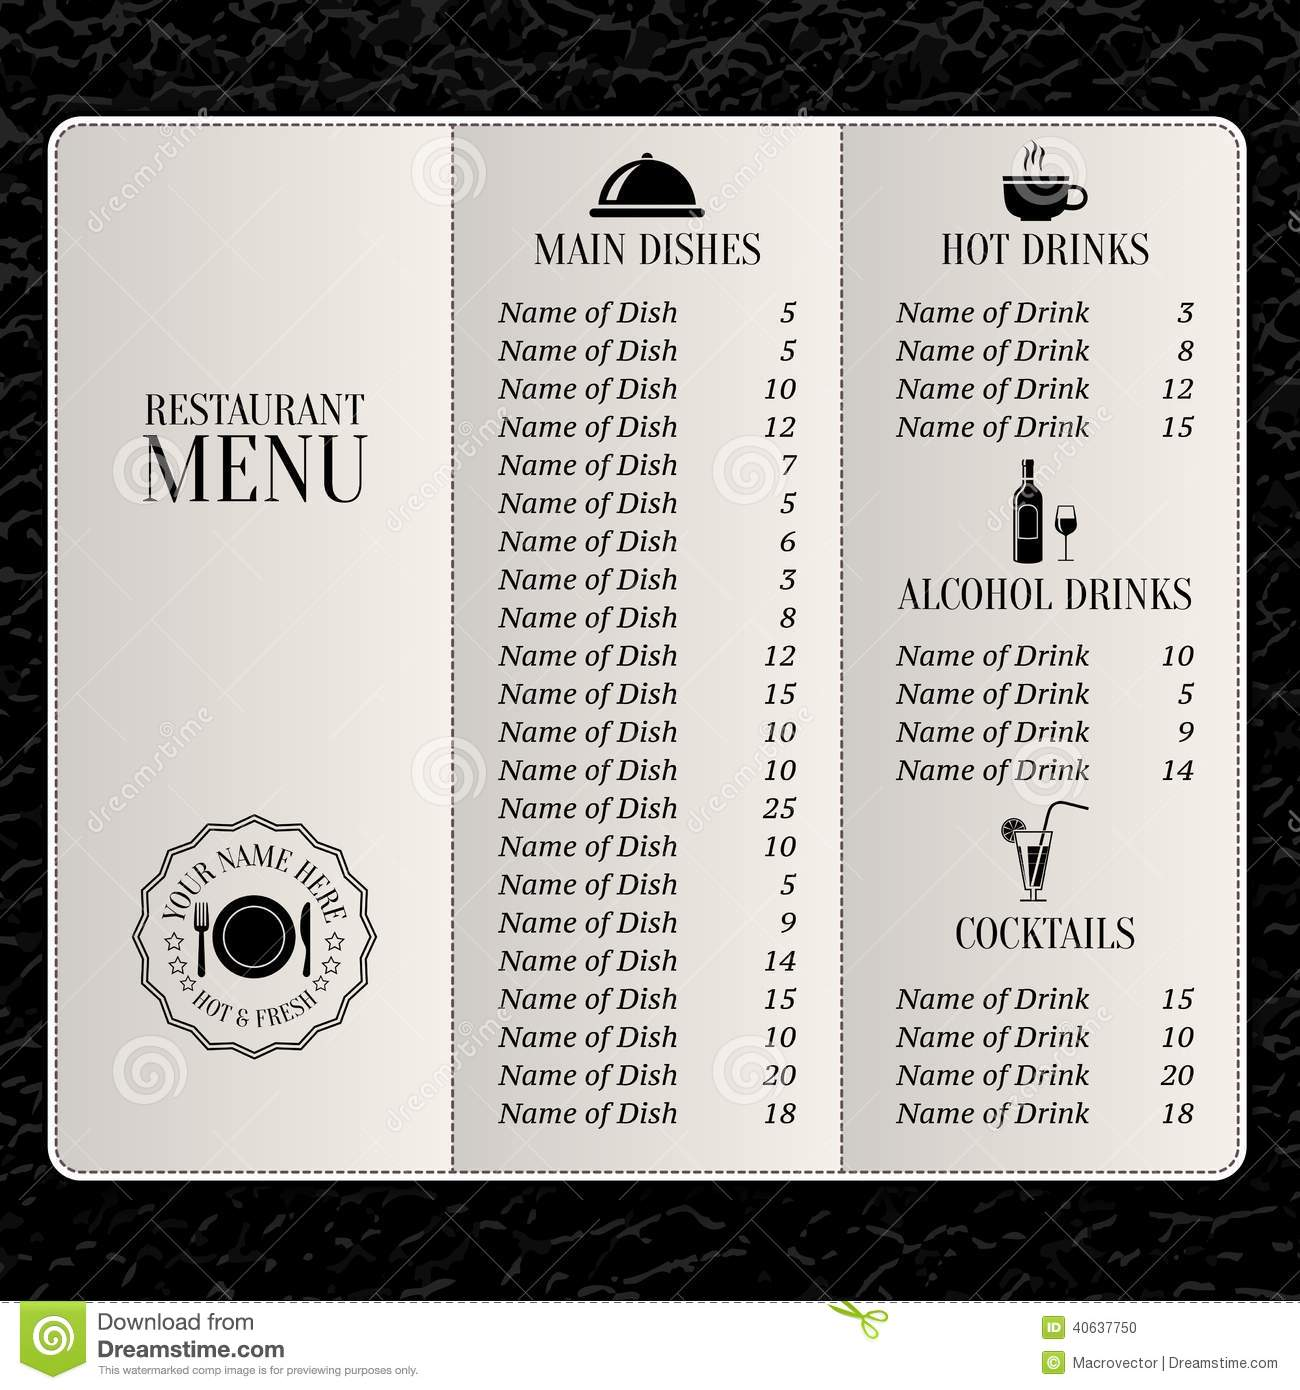 Restaurant Menu Template  Free Downloadable Restaurant Menu Templates